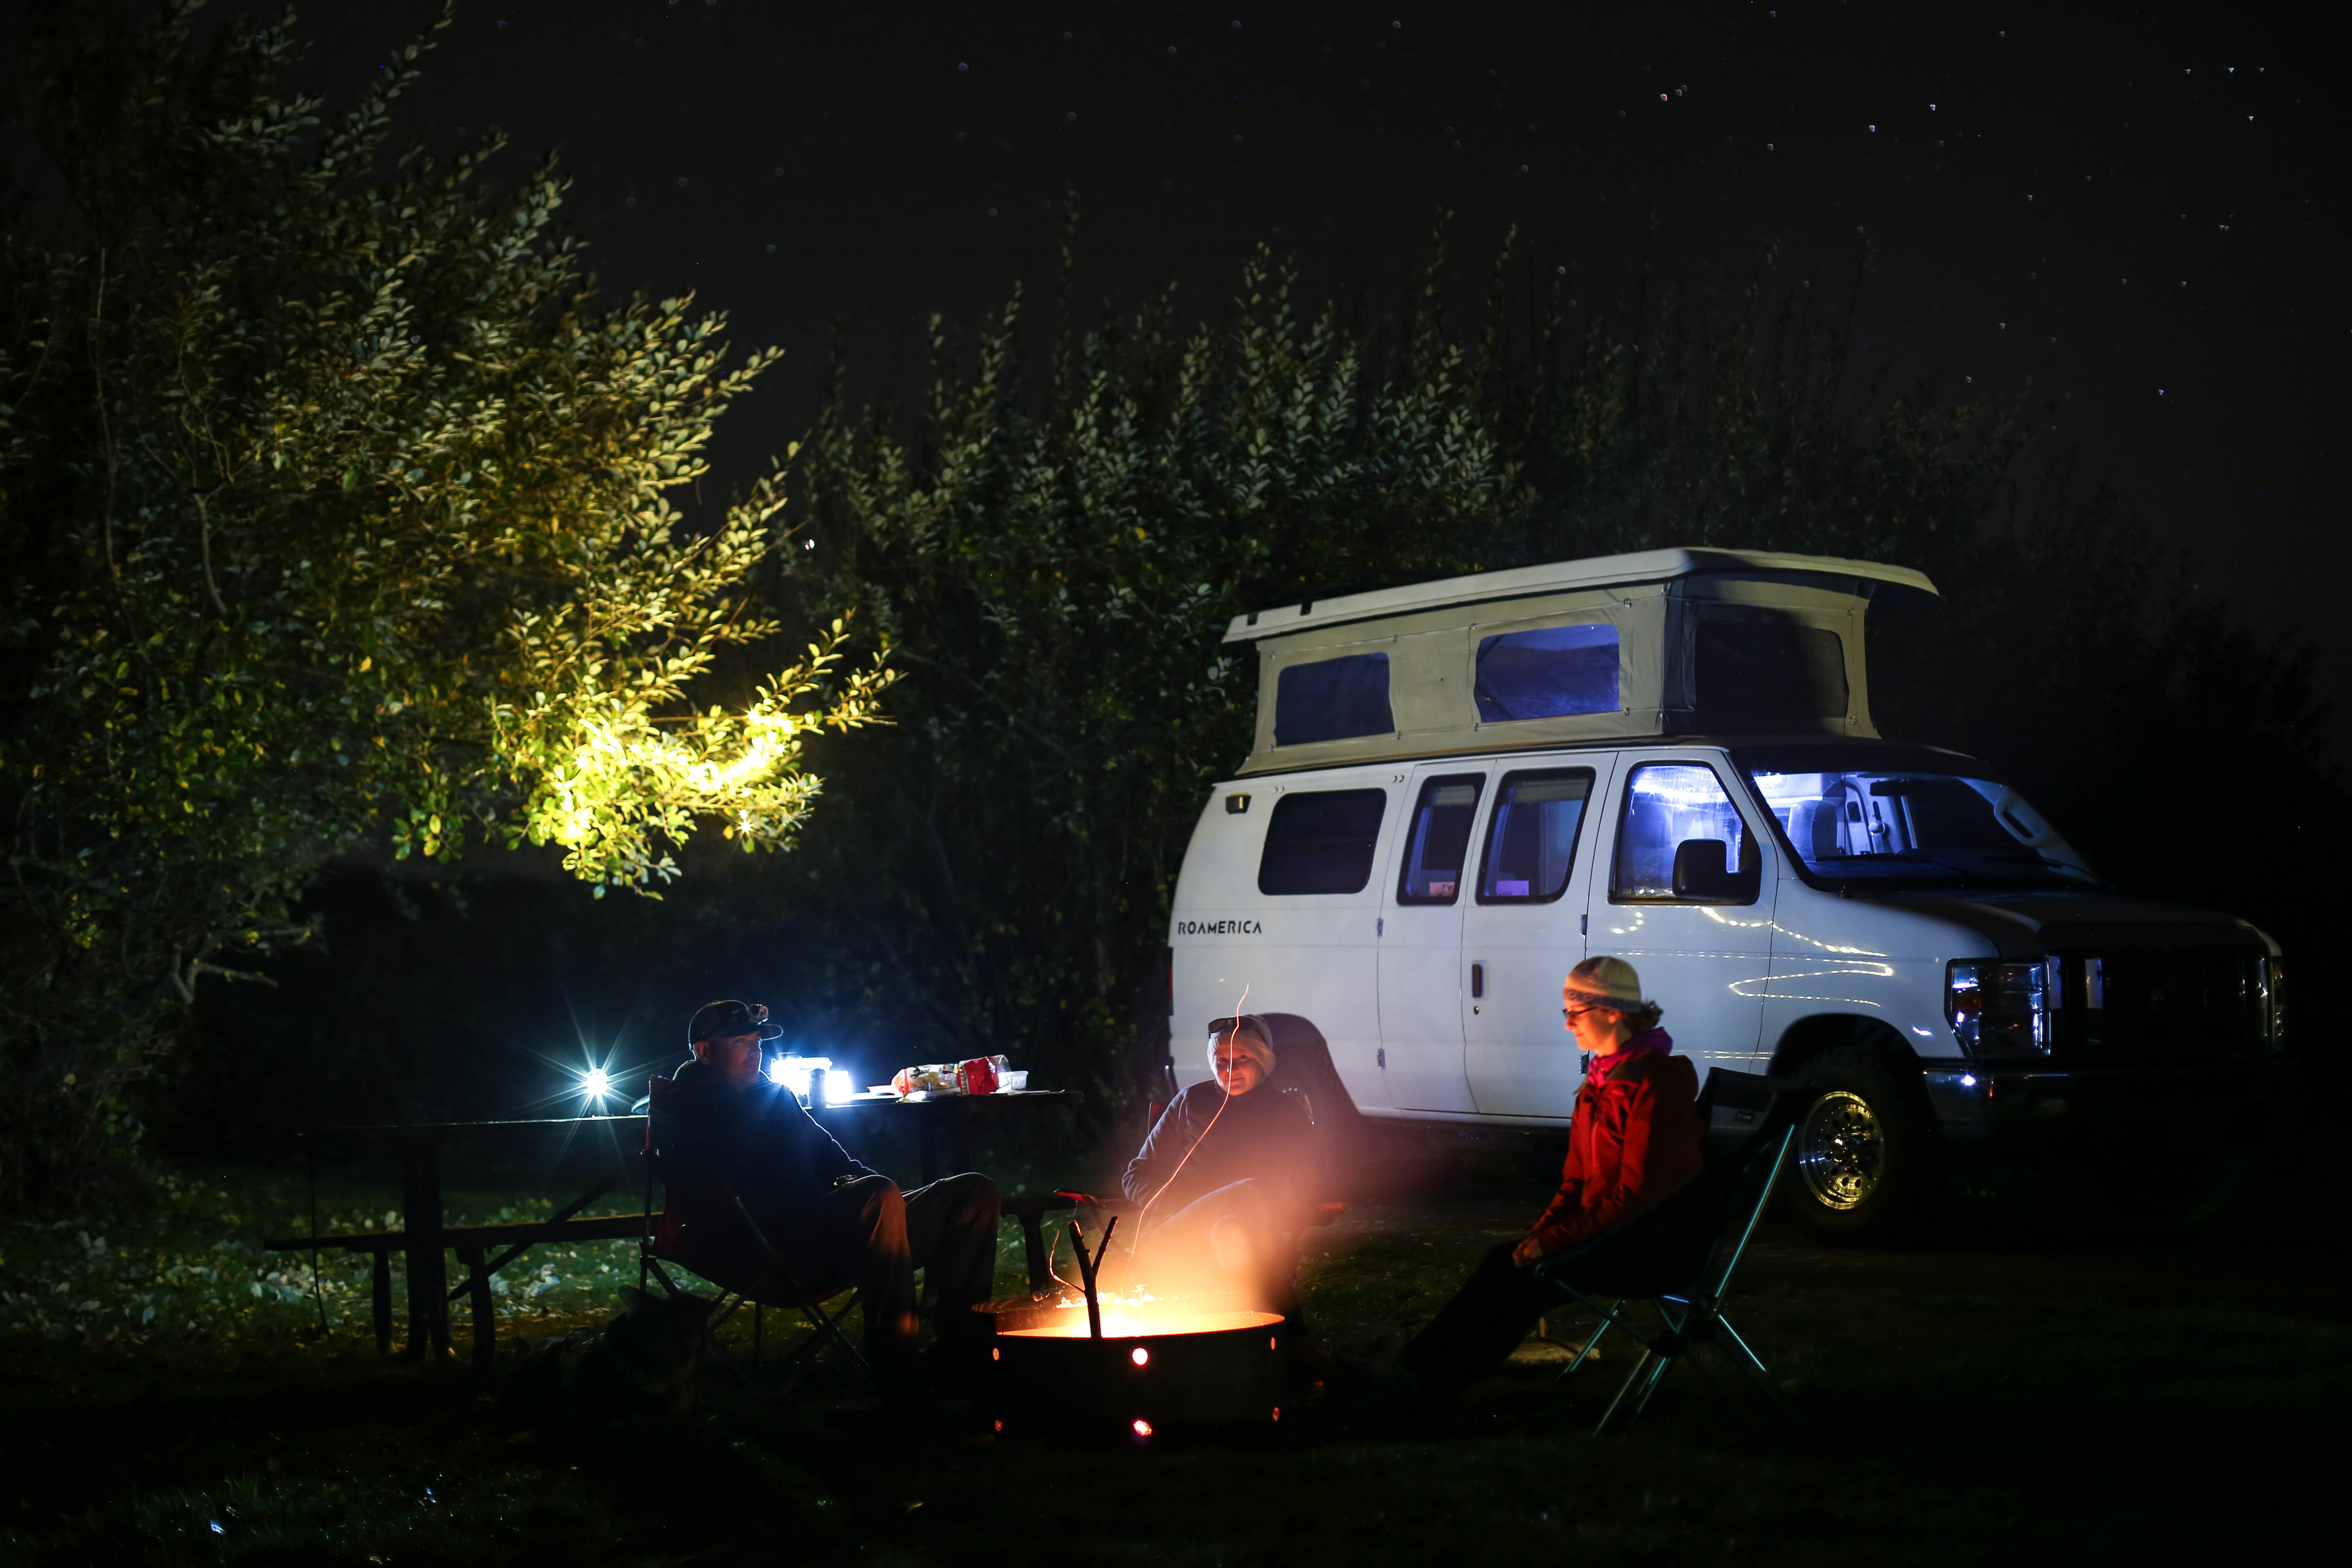 Setting up camp has never been easier!